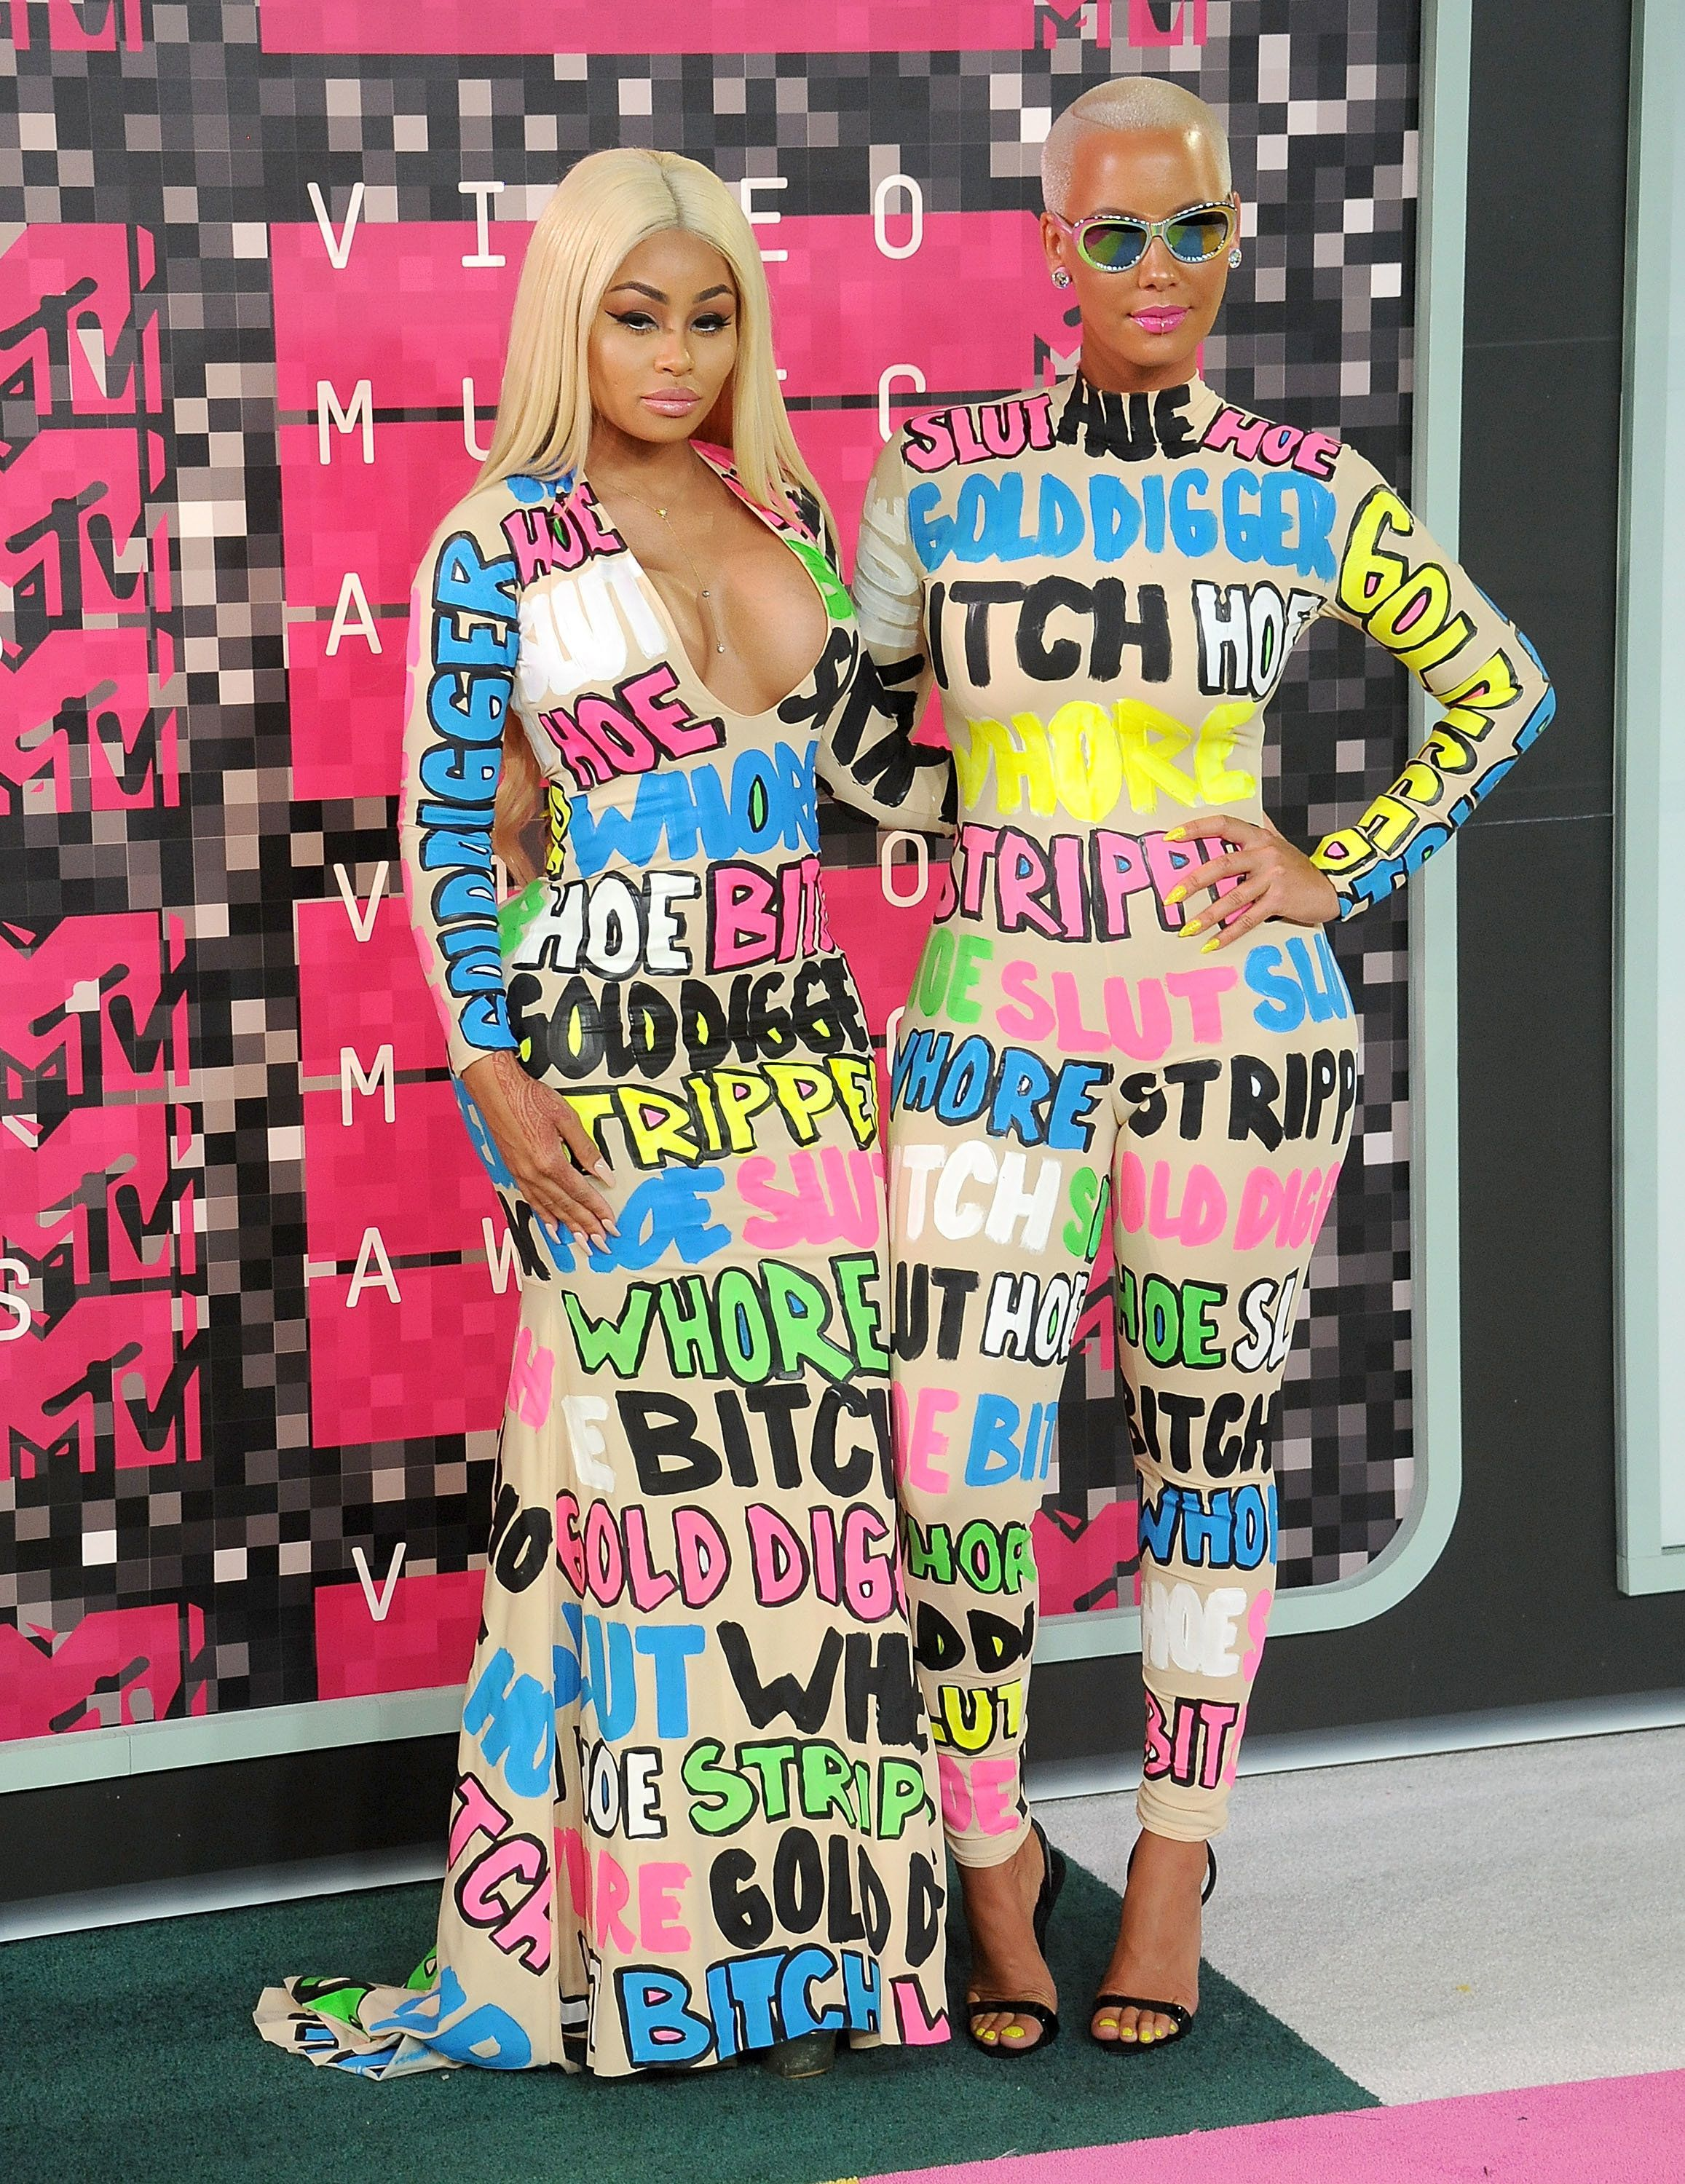 LOS ANGELES, CA - AUGUST 30:  Amber Rose and Blac Chyna arrive at the 2015 MTV Video Music Awards at Microsoft Theater on August 30, 2015 in Los Angeles, California.  (Photo by Gregg DeGuire/WireImage)